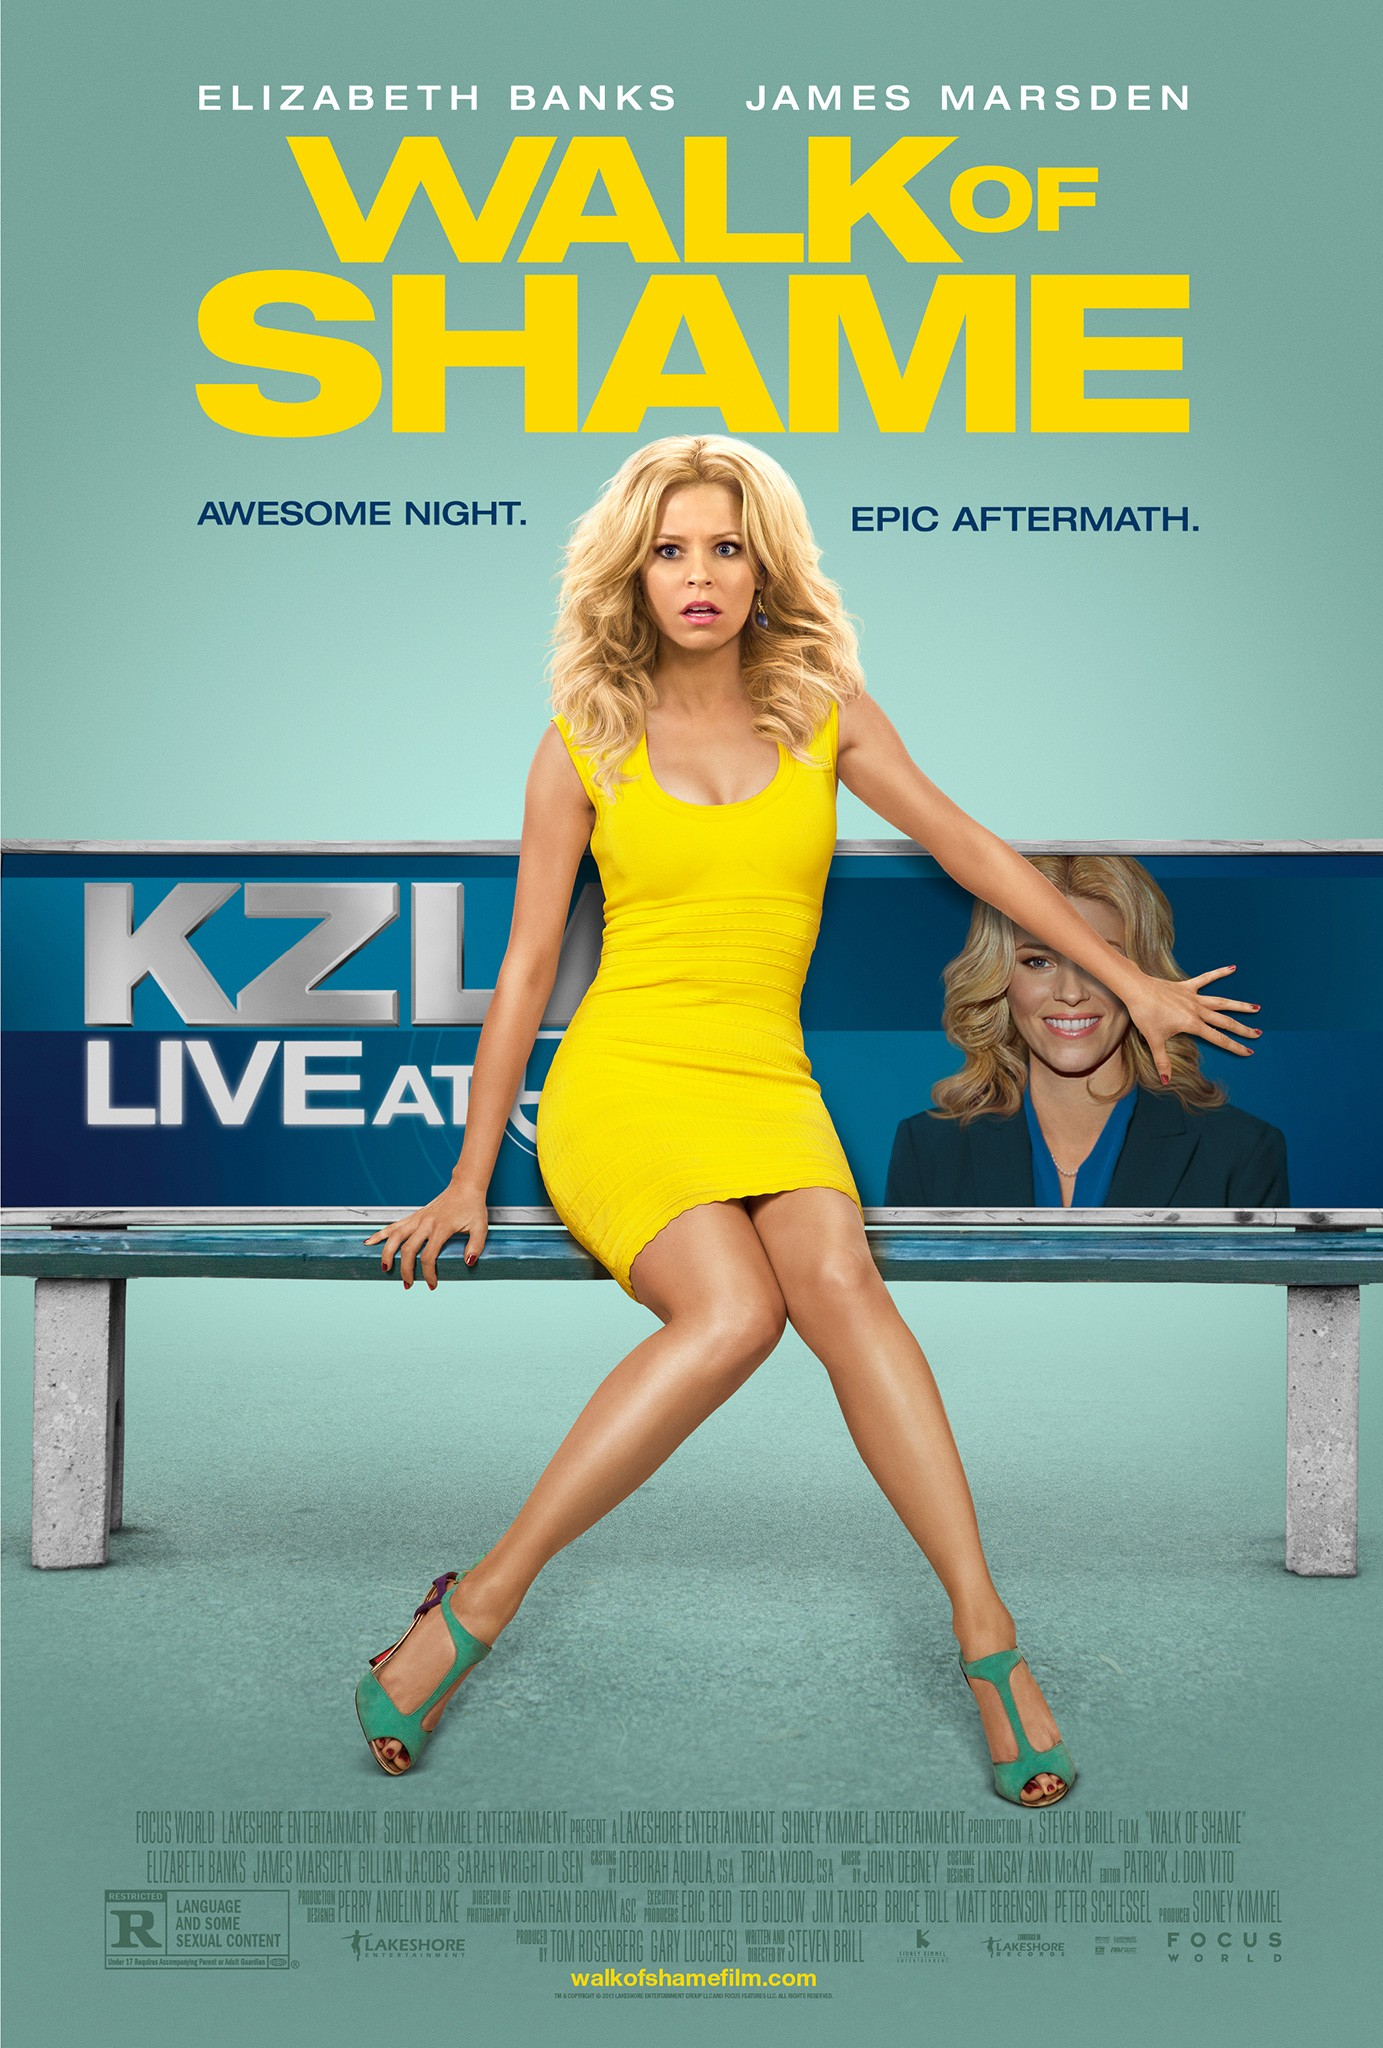 WALK OF SHAME-Official Poster Banner PROMO XXLG-21MARCO2014-01